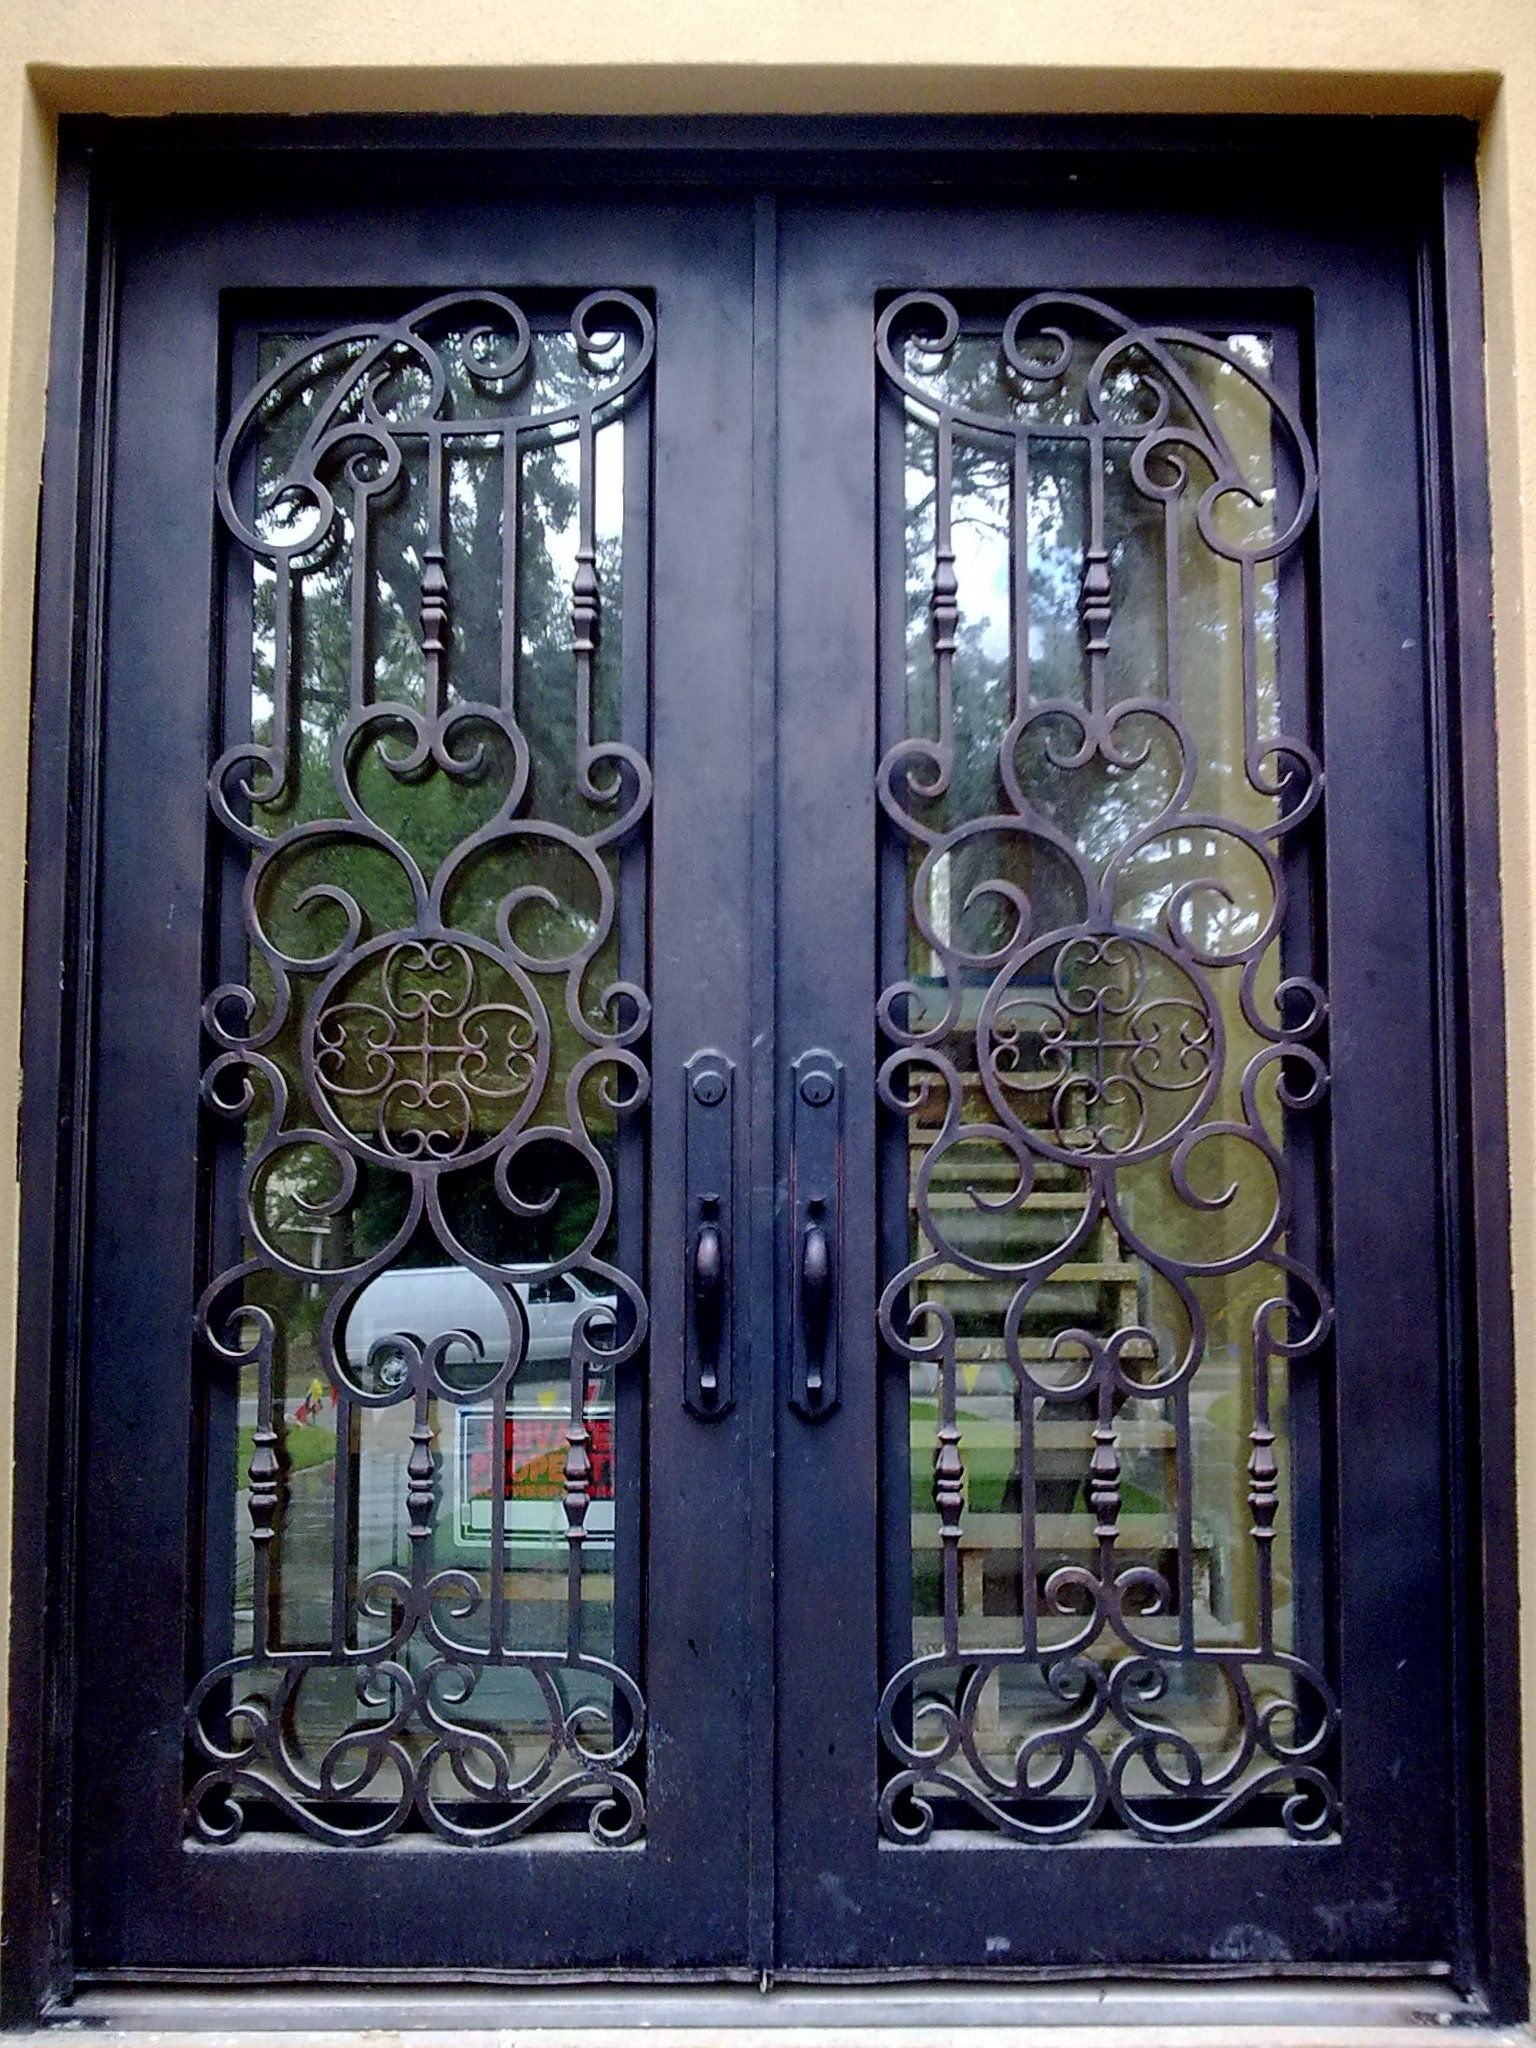 One Of Our Favorite Custom Wrought Iron Entry Doors .dream Home. Front Doors.  Iron Doors. Wrought Iron. Exterior Design. Home Remodel. Home Building.  Custom ...